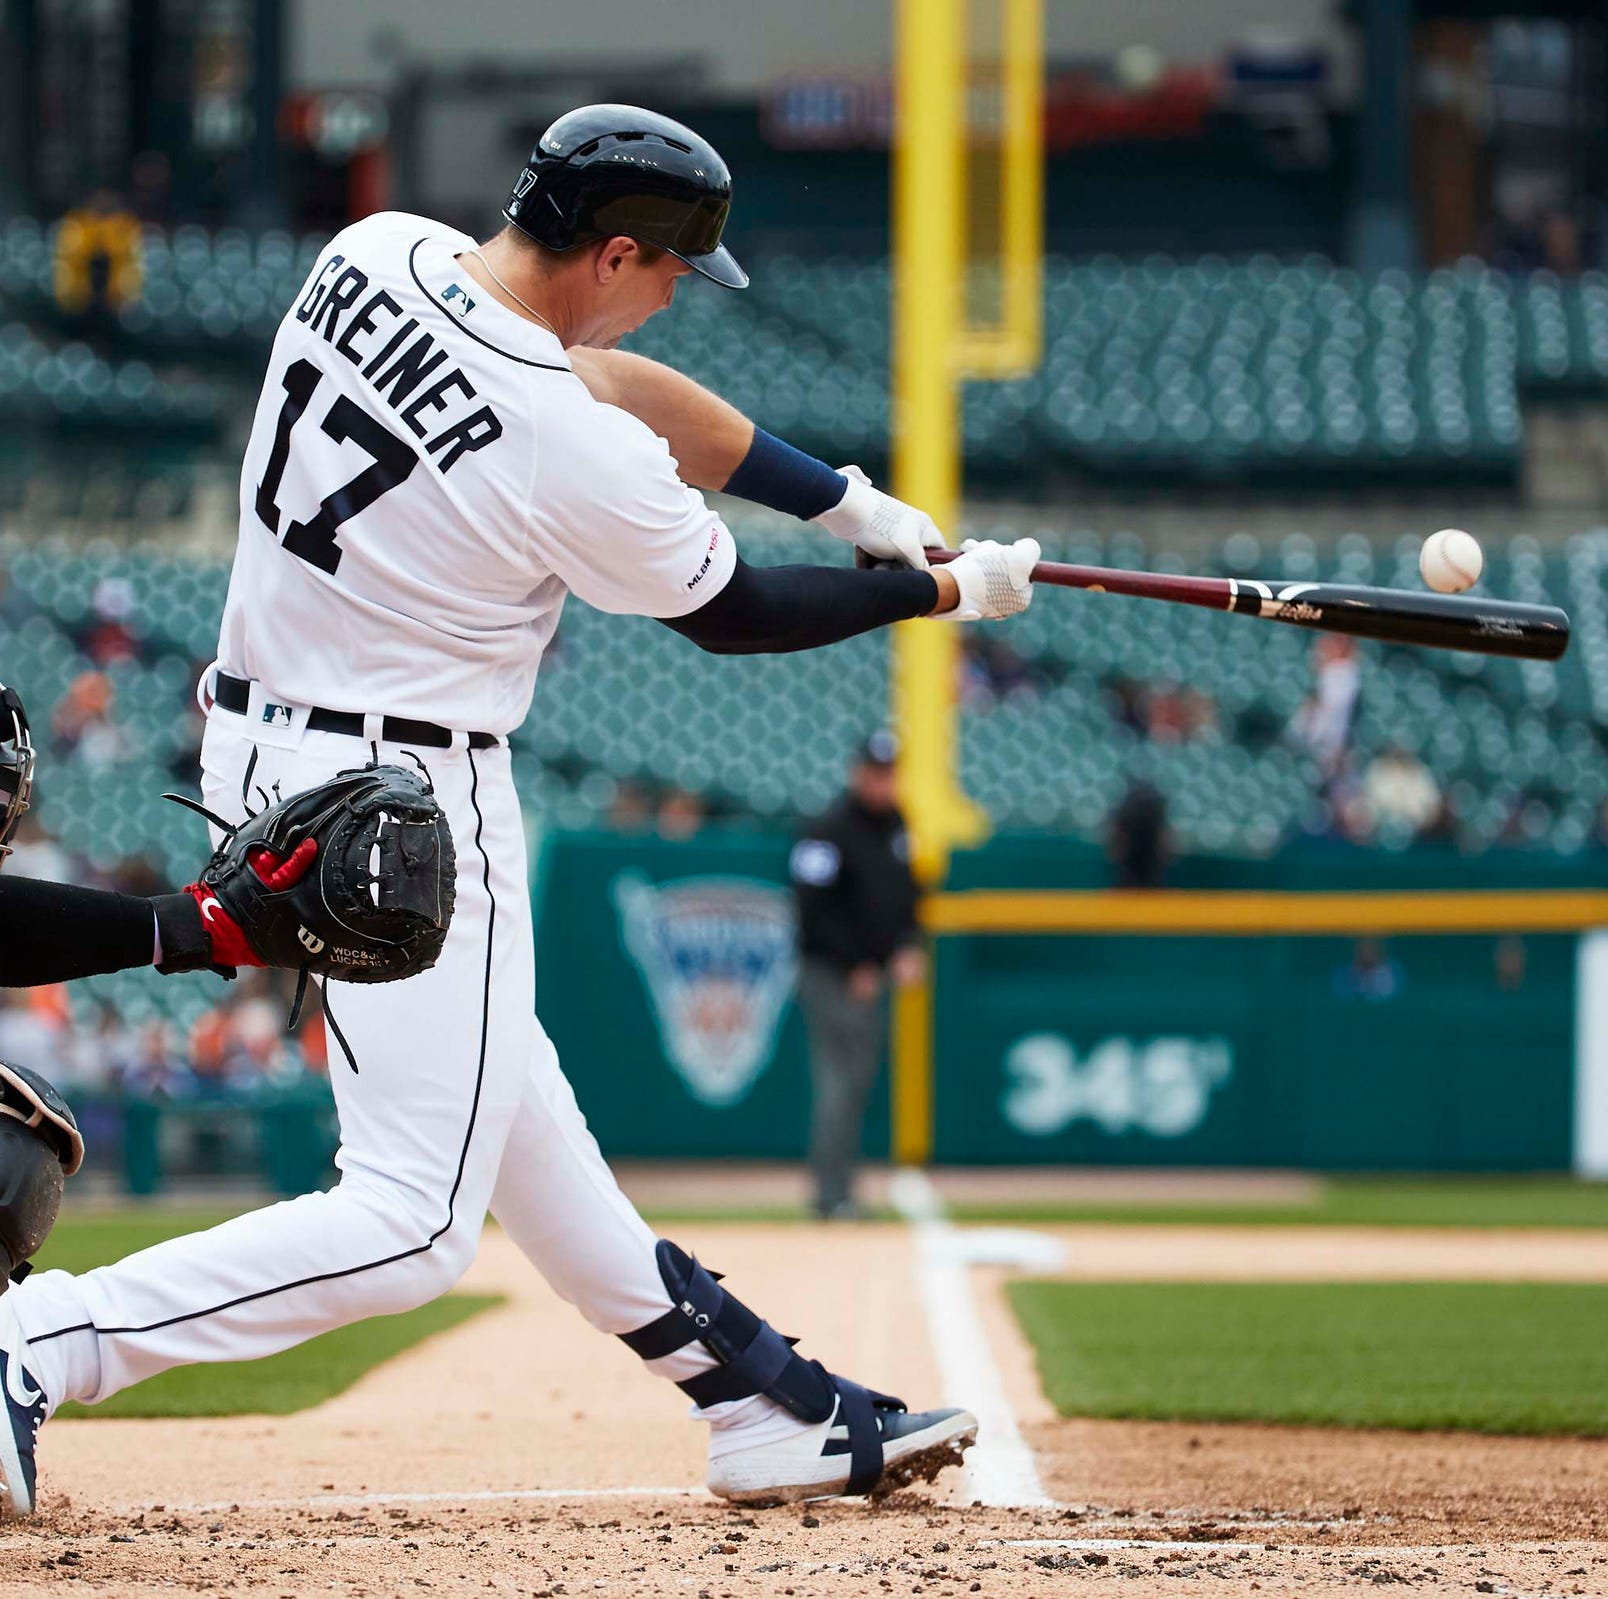 Detroit Tigers poke fun at themselves, after ugly win ends 5-game skid